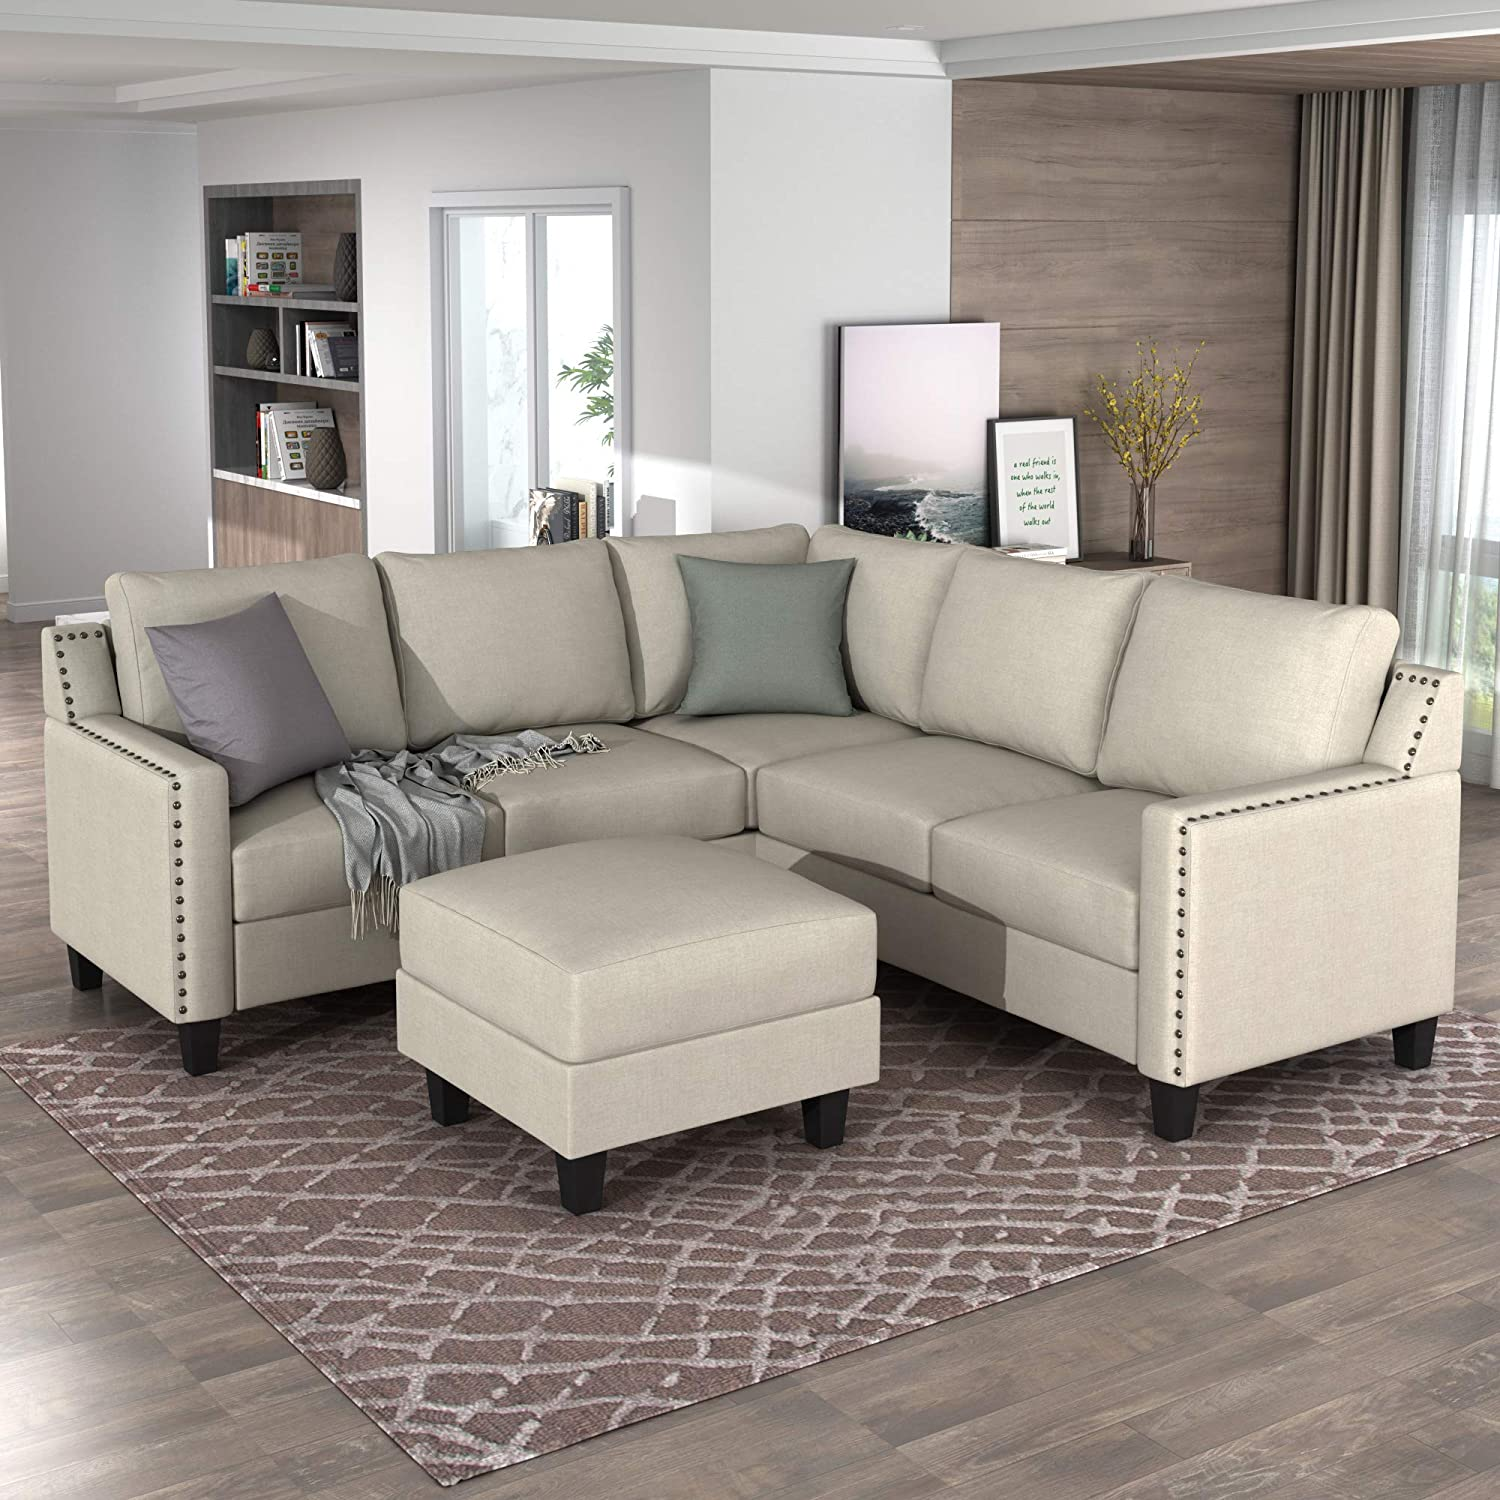 GAOPAN Max 42% OFF Super-cheap Classical Style Soft Sof Upholstered Sectional Microsuede